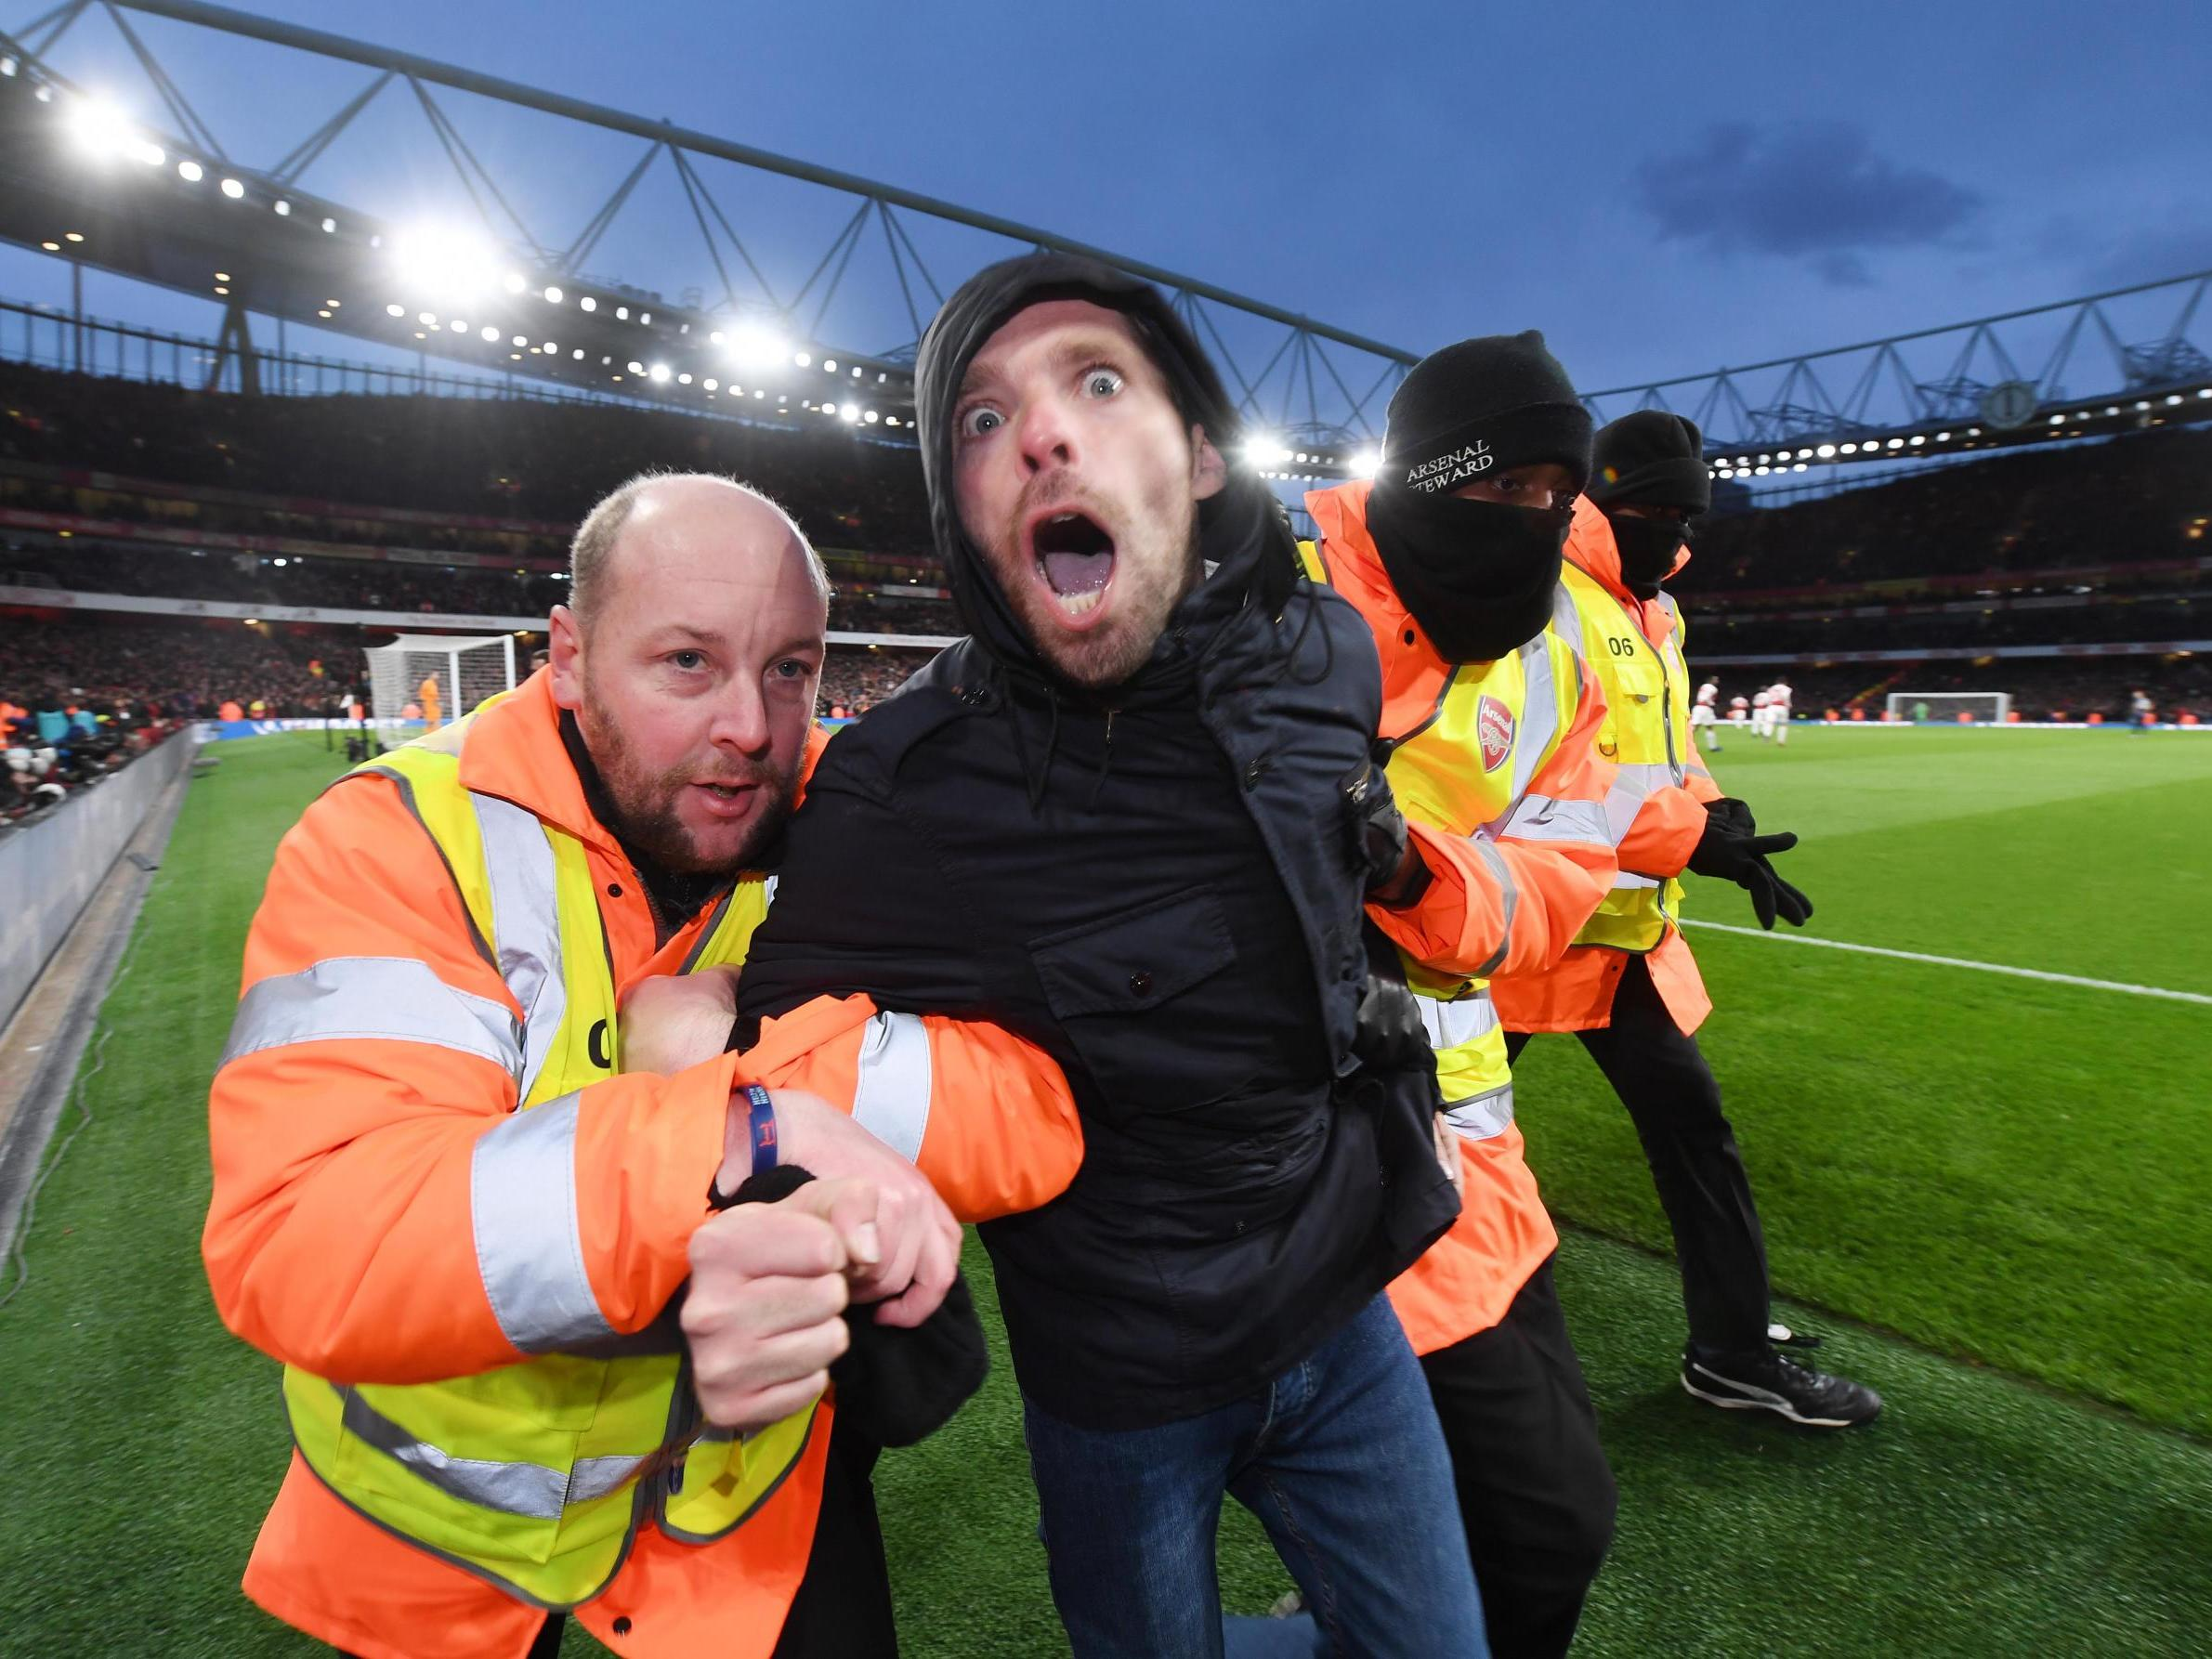 Arsenal charged by FA over fan pitch invasion during Manchester United victory